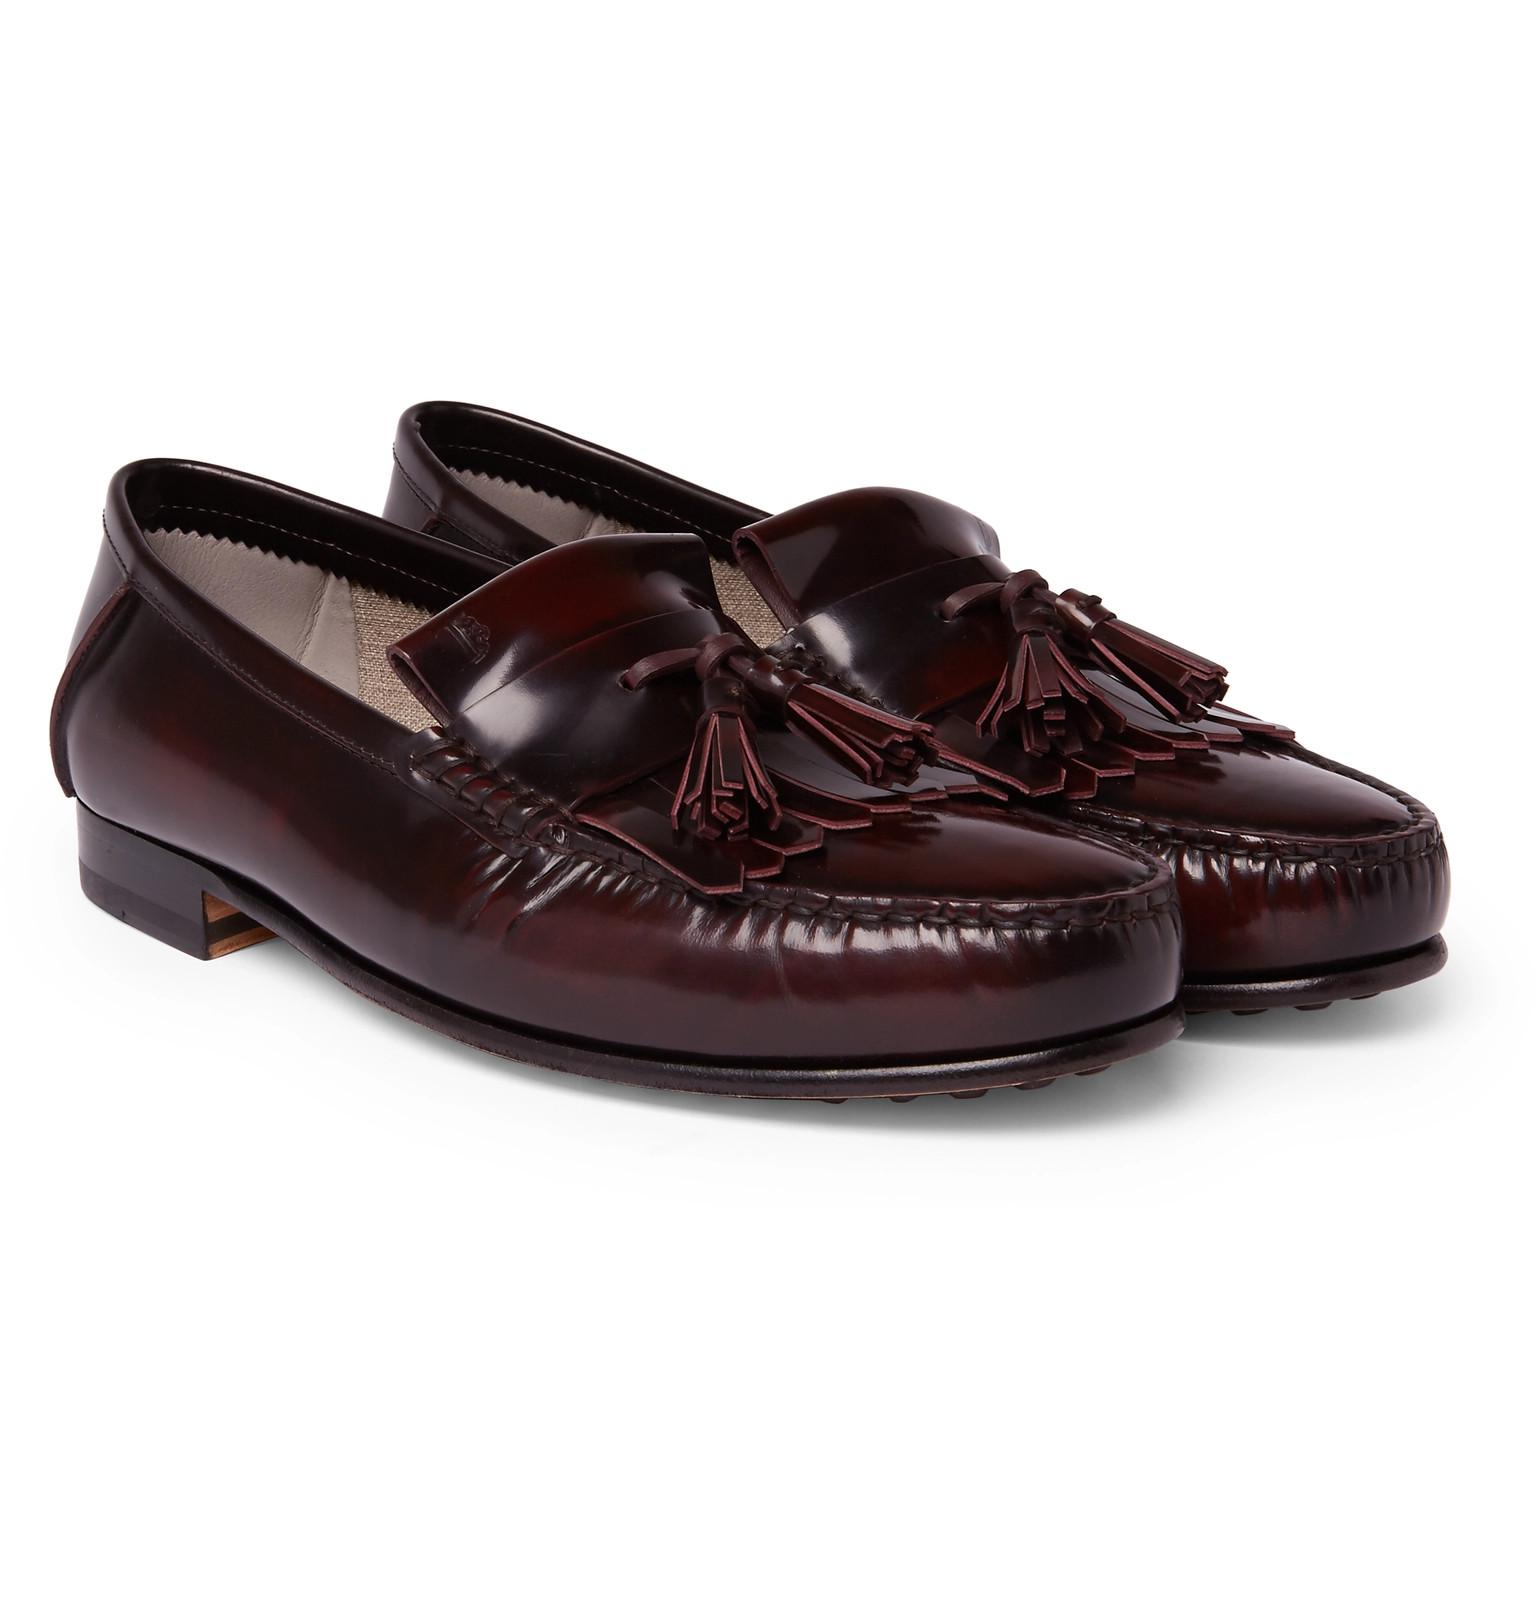 Free Shipping Pick A Best College Polished-leather Kiltie Loafers Tod's Amazon Z4oKIMYv